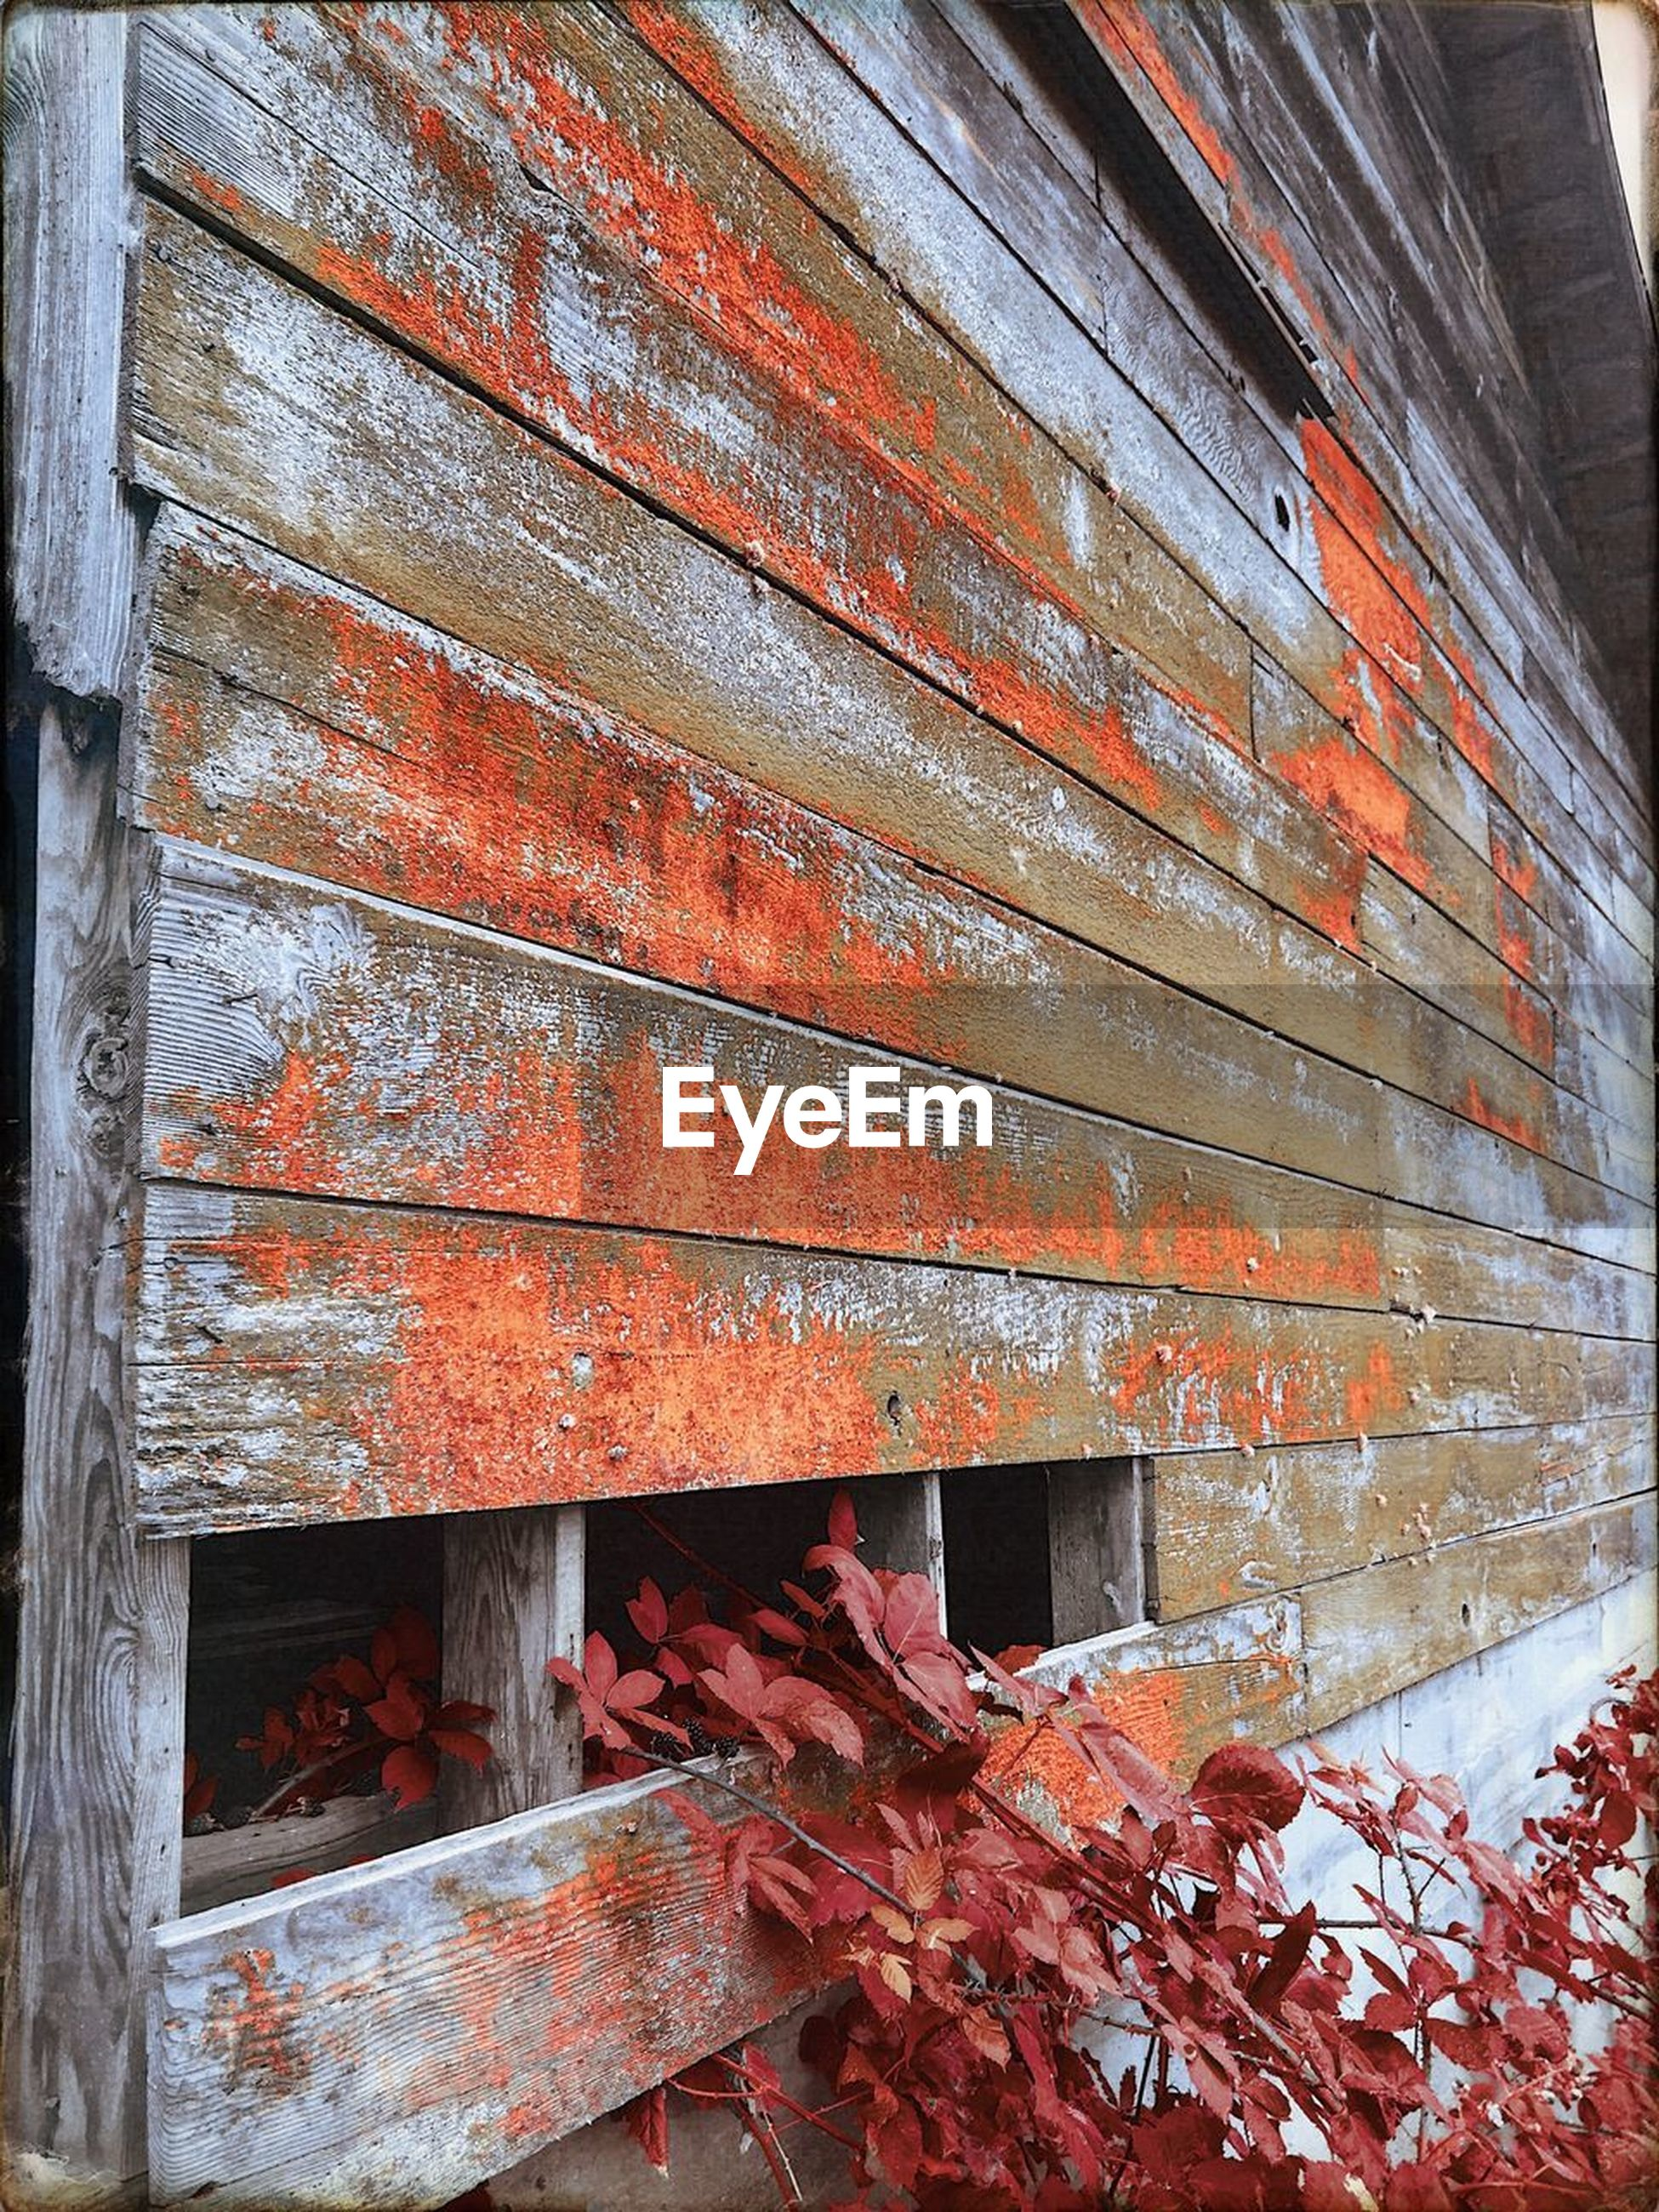 built structure, architecture, wood - material, leaf, building exterior, no people, red, weathered, outdoors, autumn, day, change, backgrounds, full frame, close-up, nature